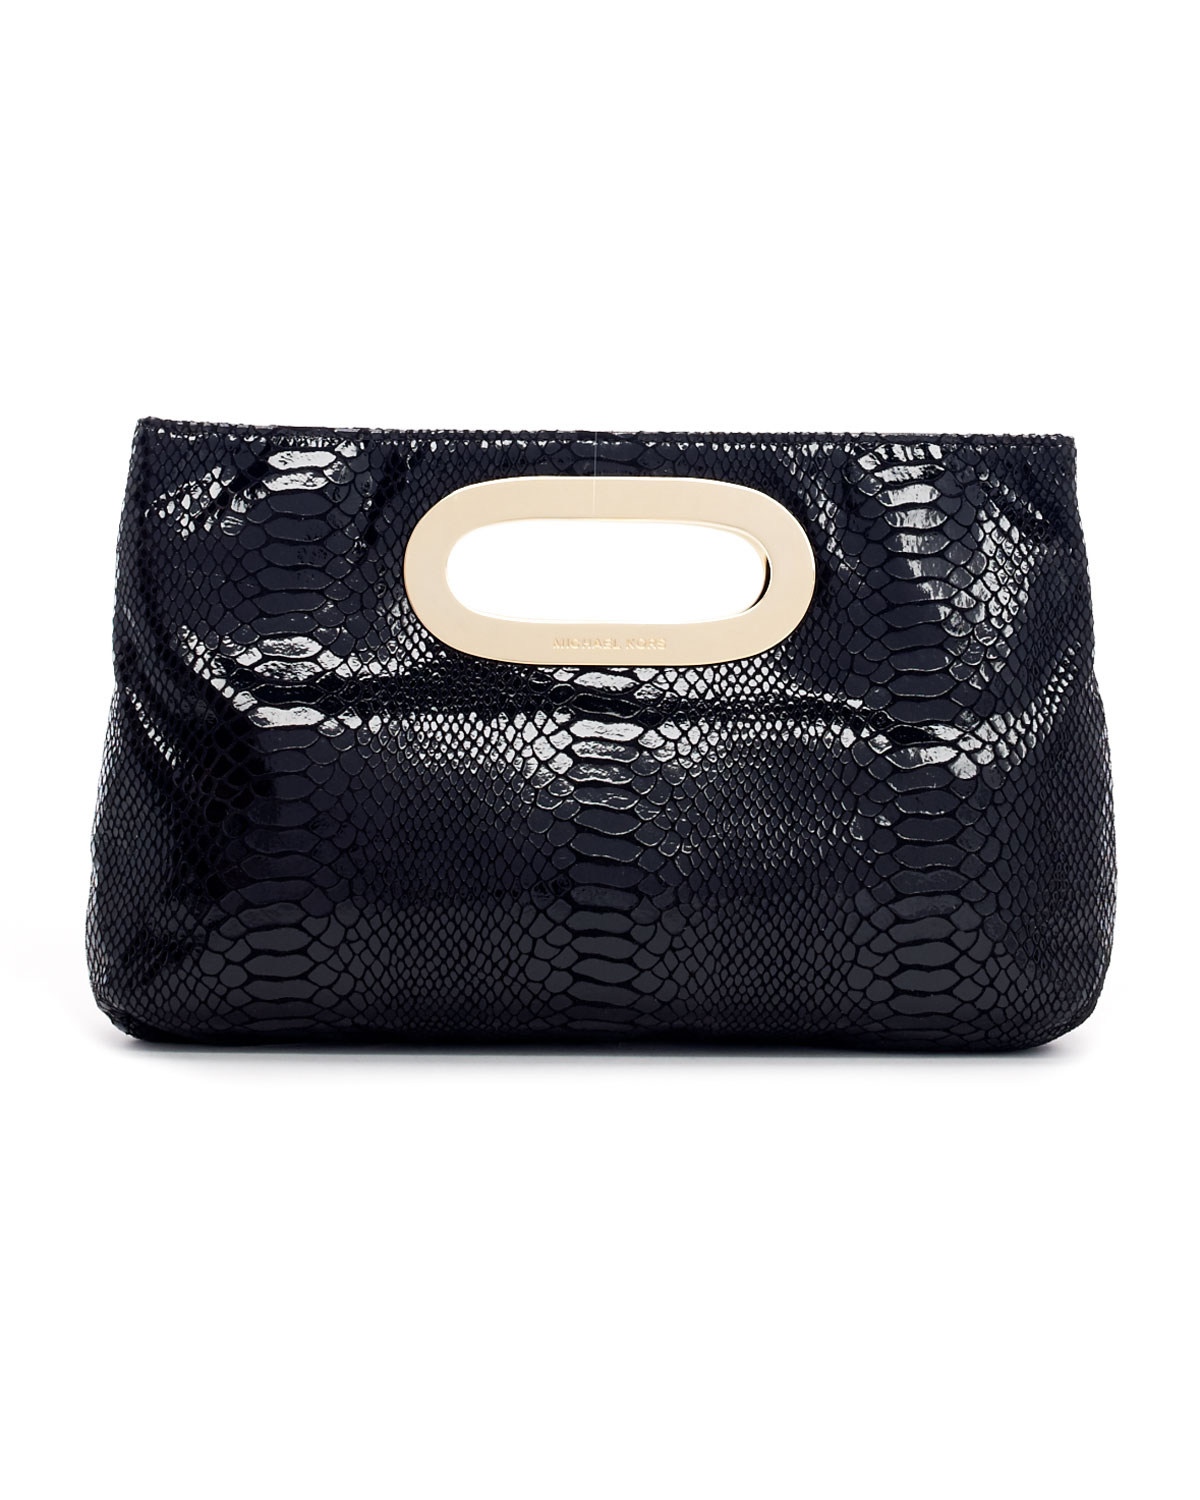 michael michael kors berkley patent pythonembossed clutch bag in black lyst. Black Bedroom Furniture Sets. Home Design Ideas